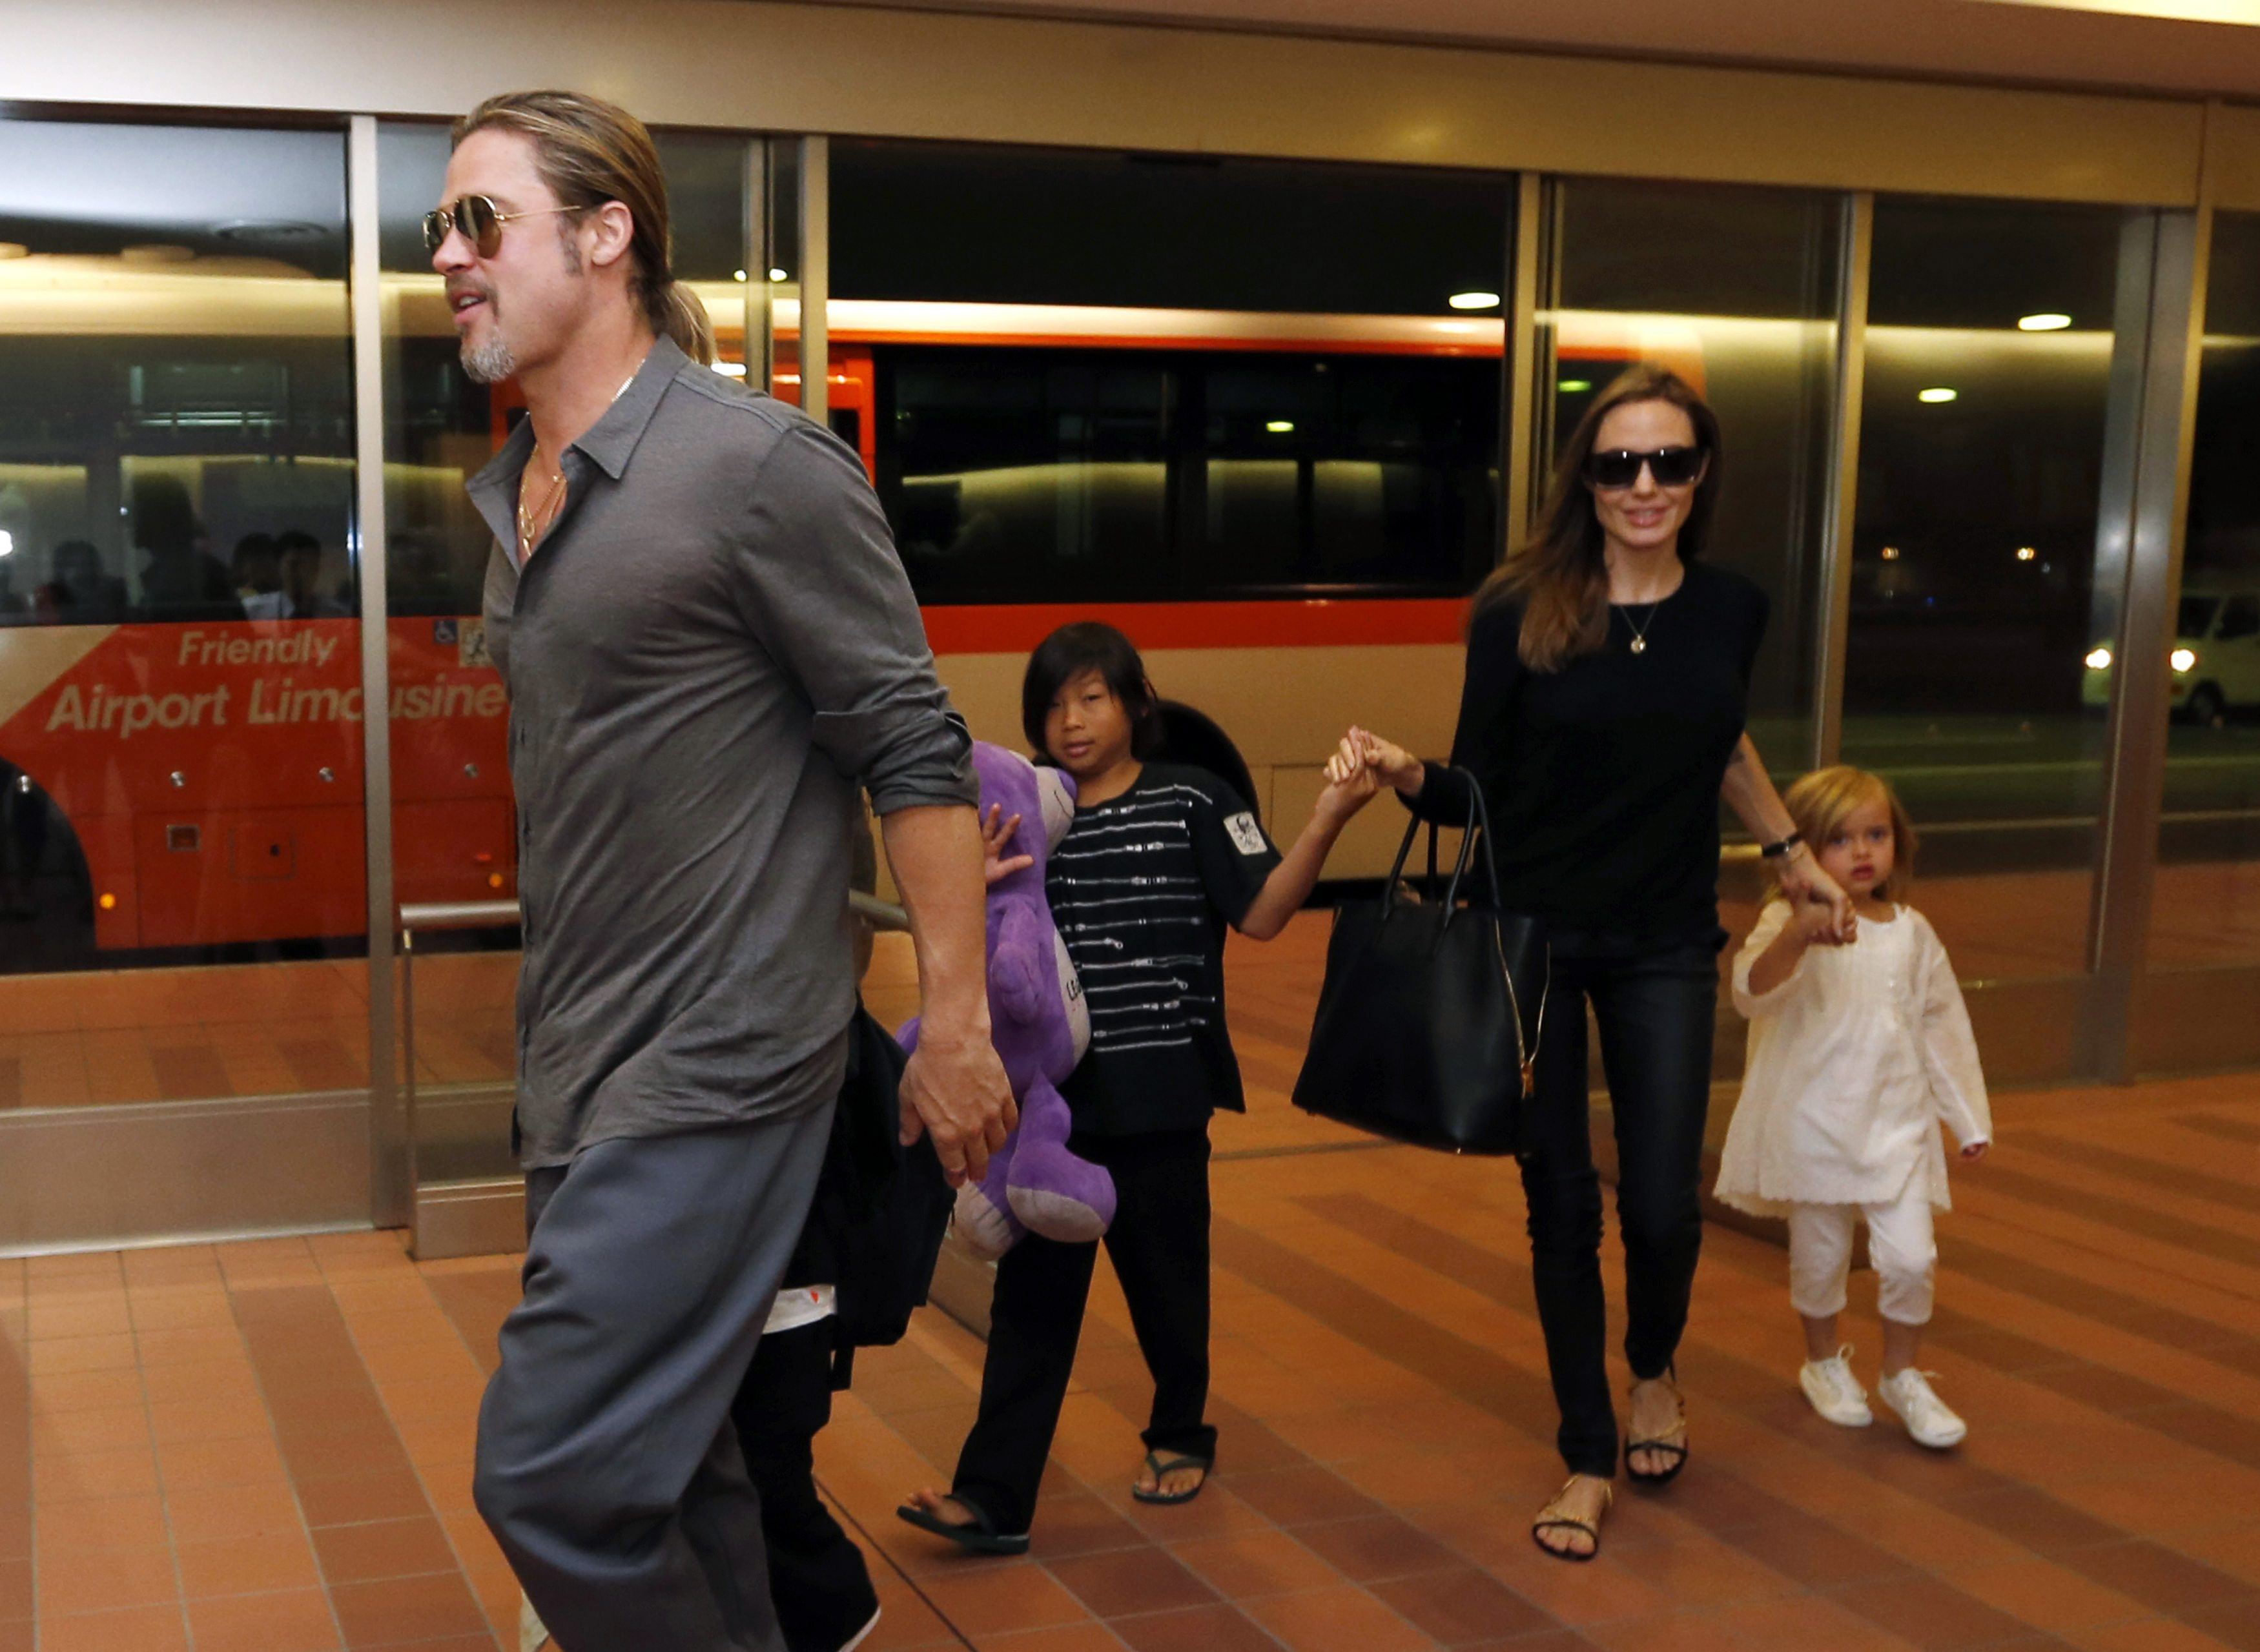 Hollywood actors Brad Pitt (L) and actress Angelina Jolie (2nd R) arrive with their children Knox (beside Pitt), Vivienne (R) and Pax (C) at Haneda international airport in Tokyo, Japan on July 28, 2013.  REUTERS/Issei Kato/File Photo